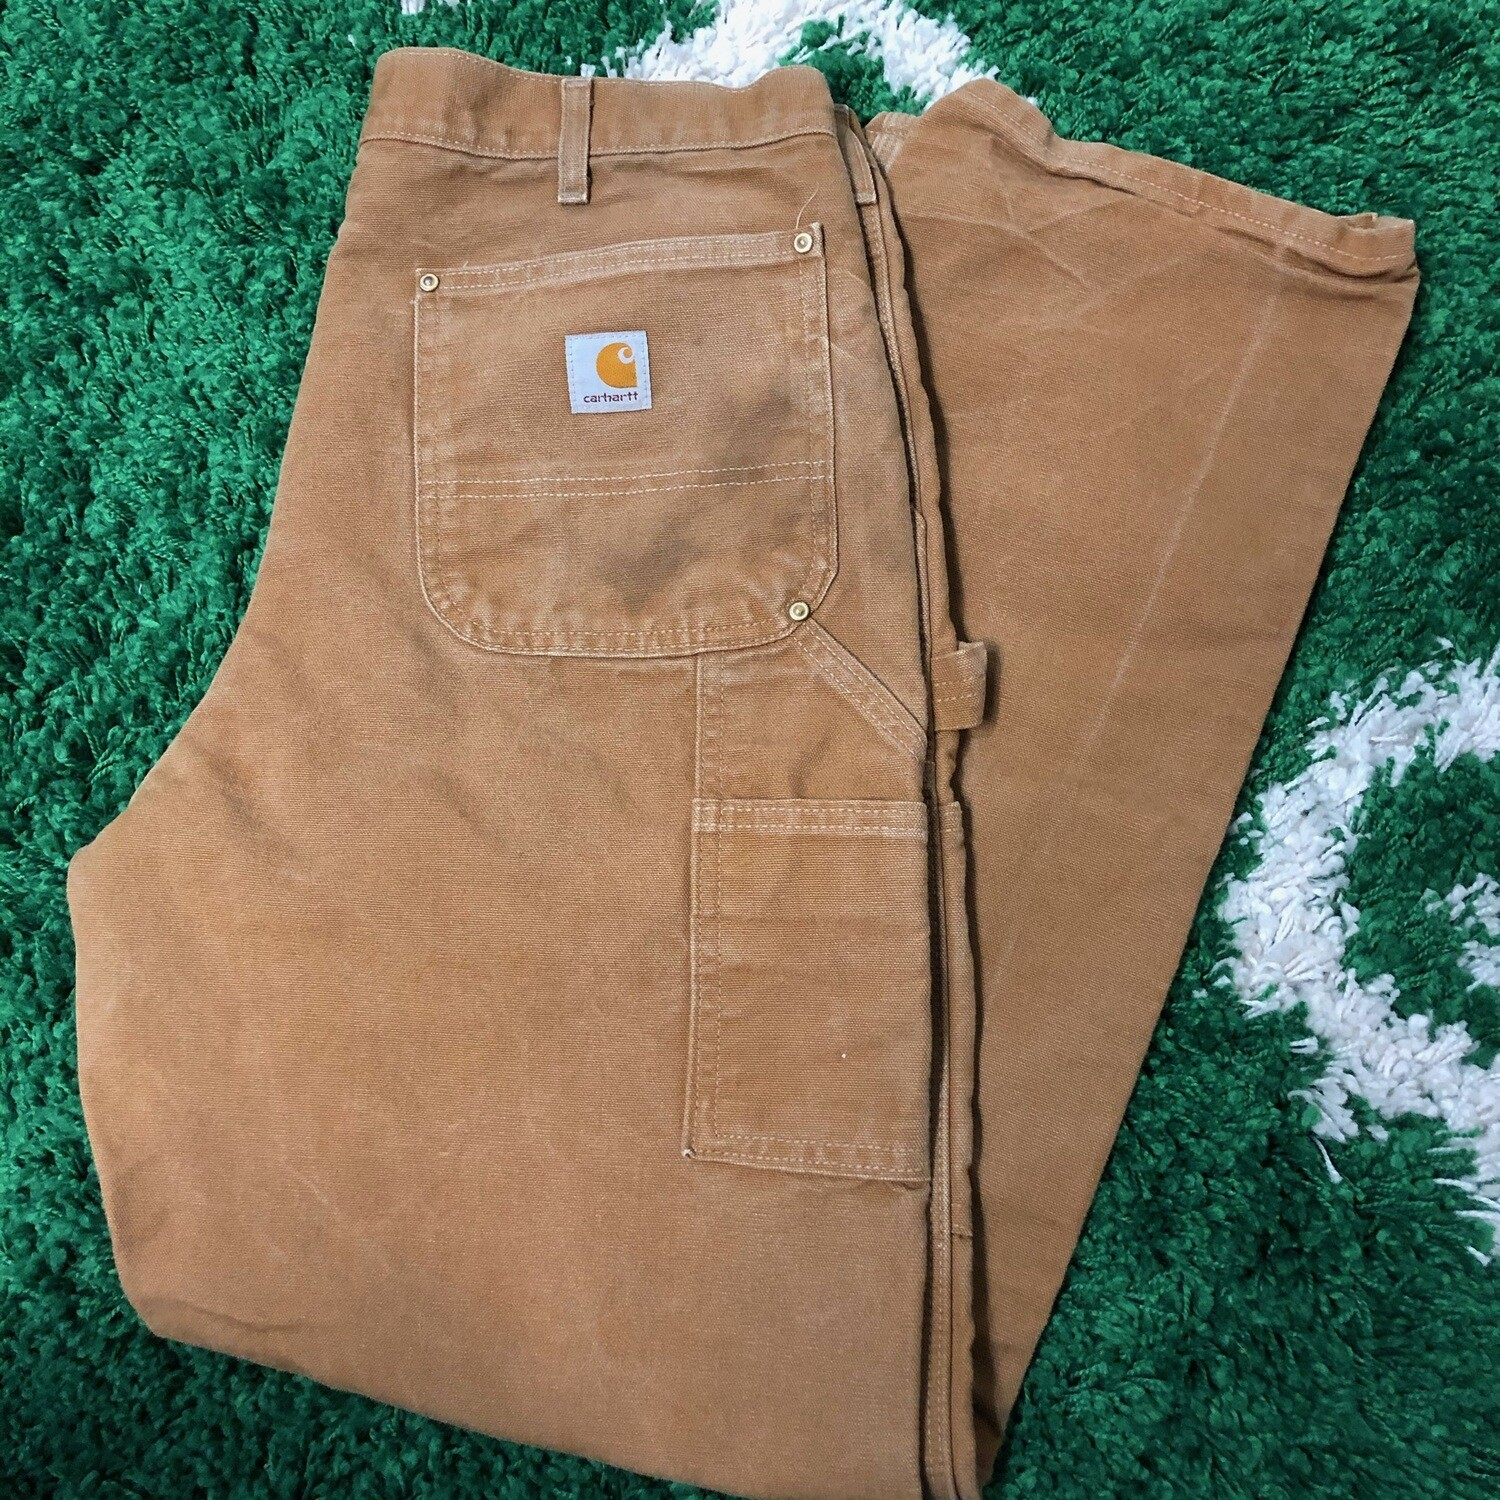 Carhartt Made in USA Work Pants Size 34